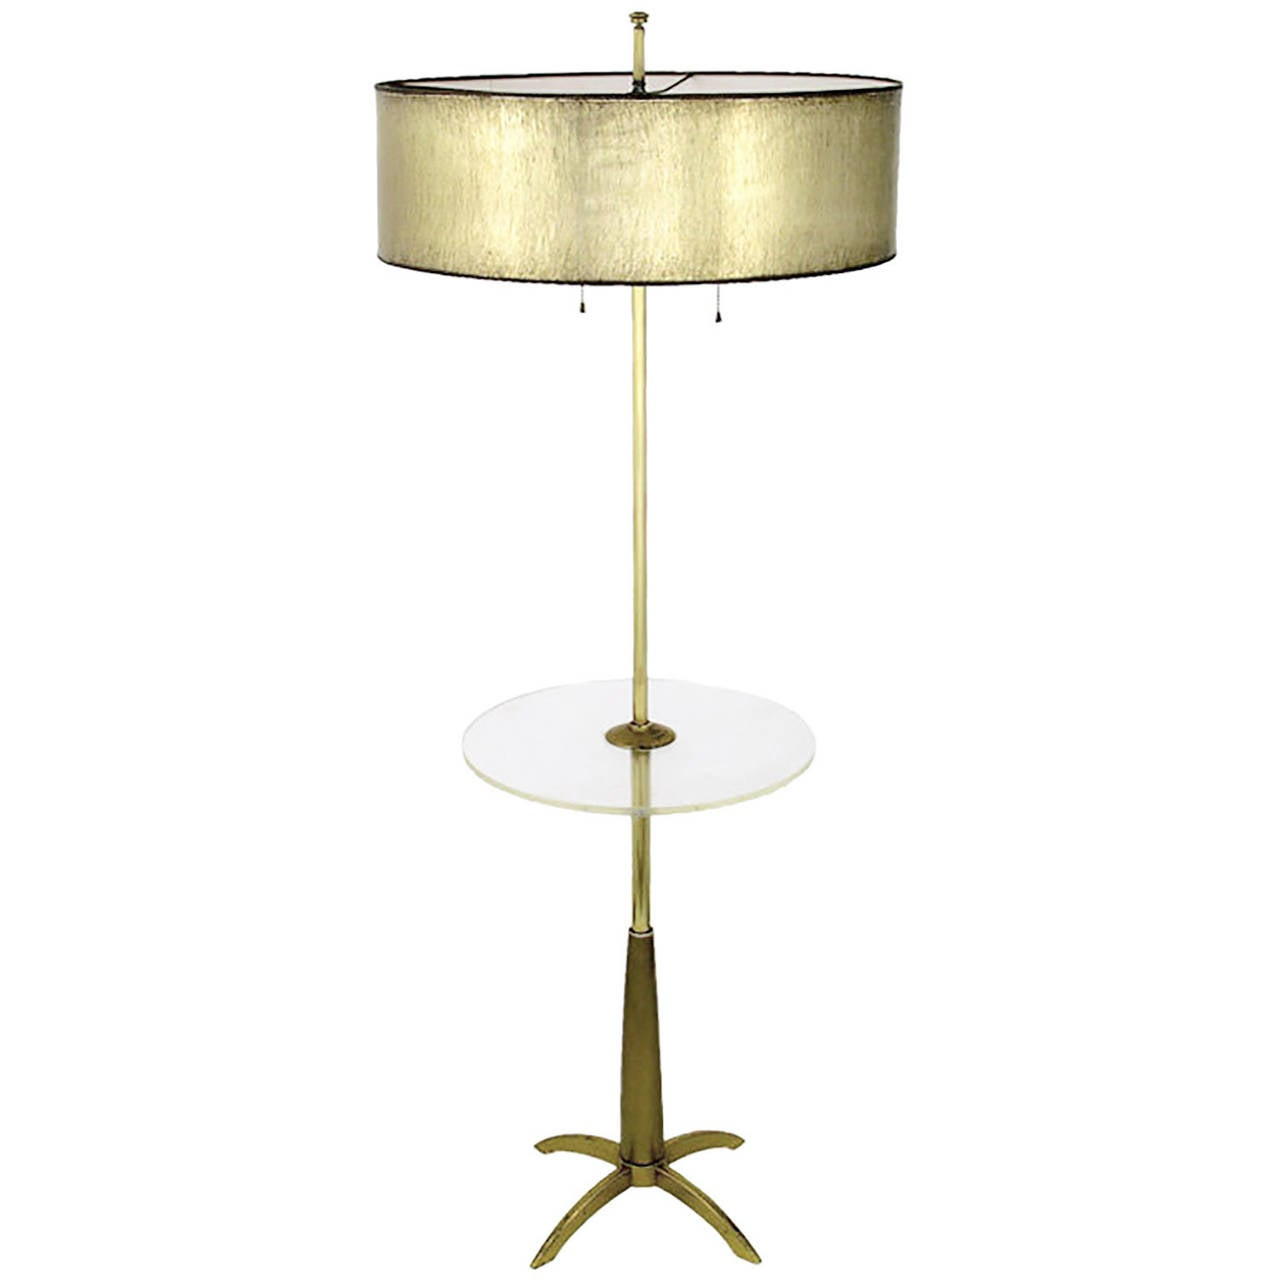 stiffel brass floor lamp with round lucite table at 1stdibs. Black Bedroom Furniture Sets. Home Design Ideas